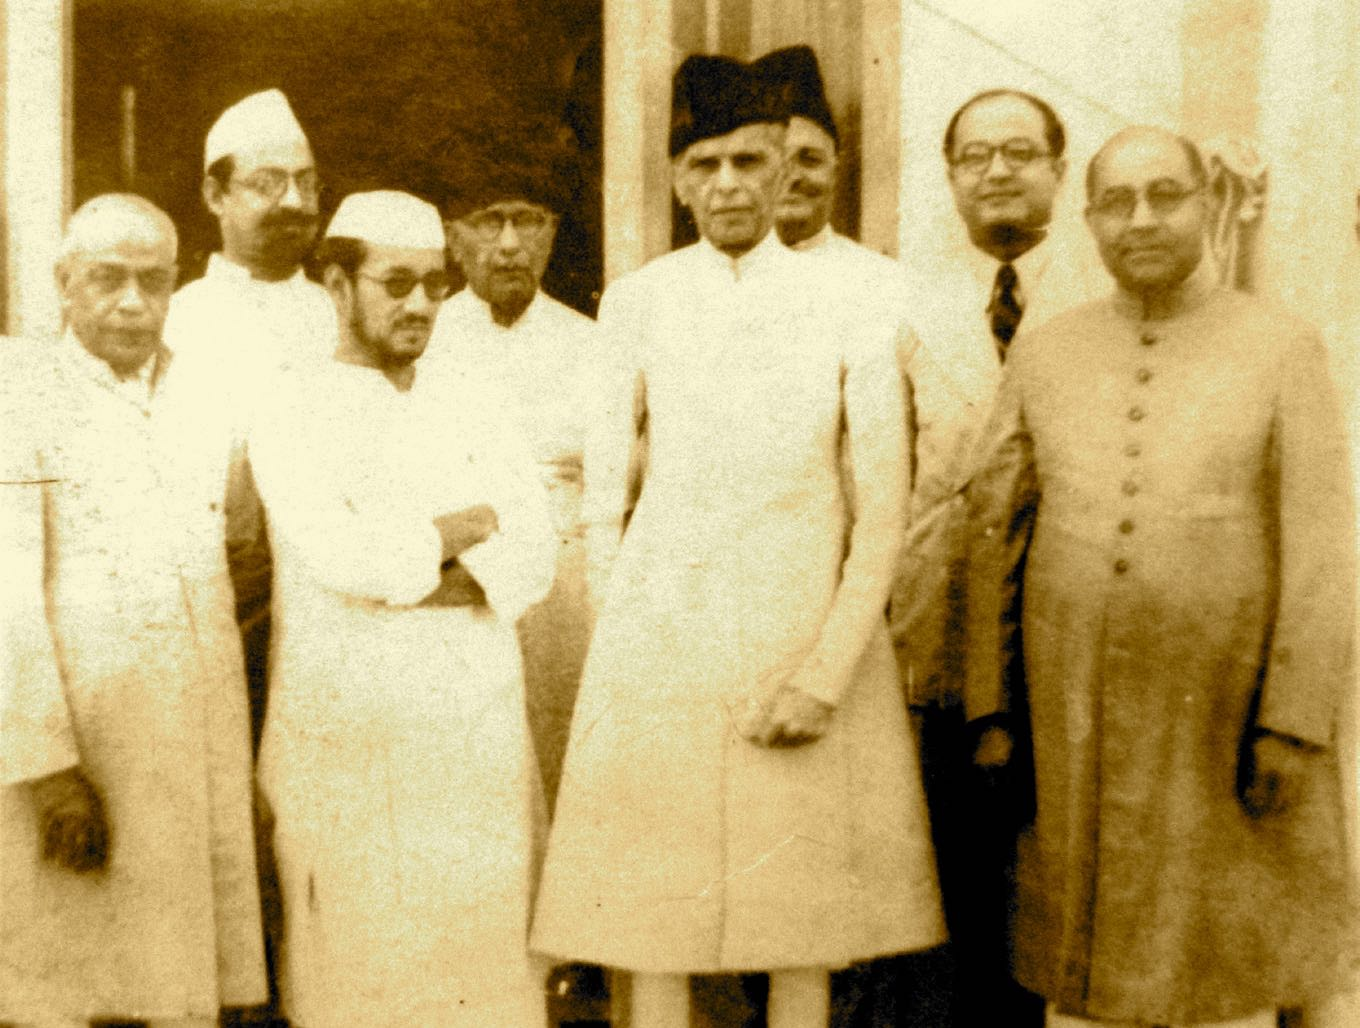 From Left to Right: Nawab Ismail Khan (President U.P. Muslim League), Syed Hussain Imam, Raja of Mahmudabad, Chaudhry Khaliquzzaman, M. A. Jinnah, Saadullah Khan (behind Jinnah), M. A. H. Ispahani, and Nawabzada Liaquat Ali Khan, 1942 Credit: National Archives of Pakistan, Islamabad